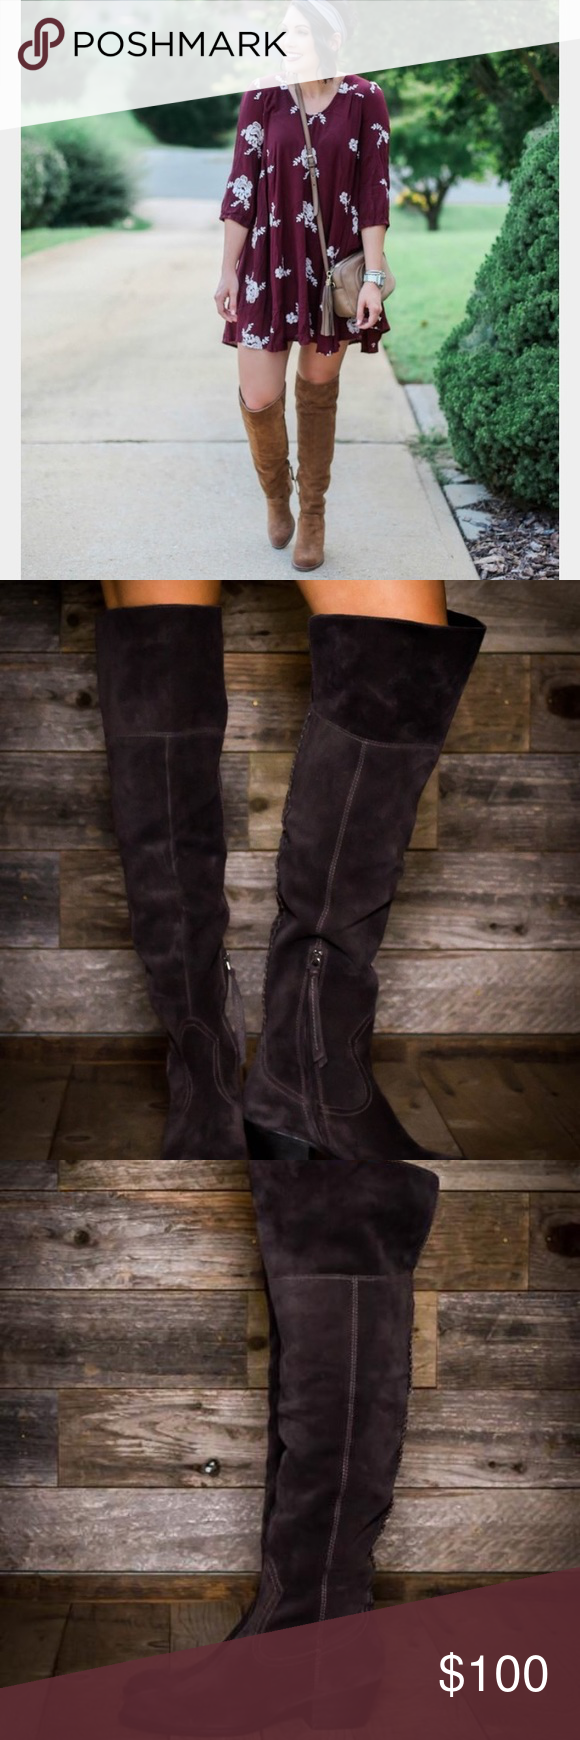 babd151b887 Dolce Vita Silas Over the Knee Boots